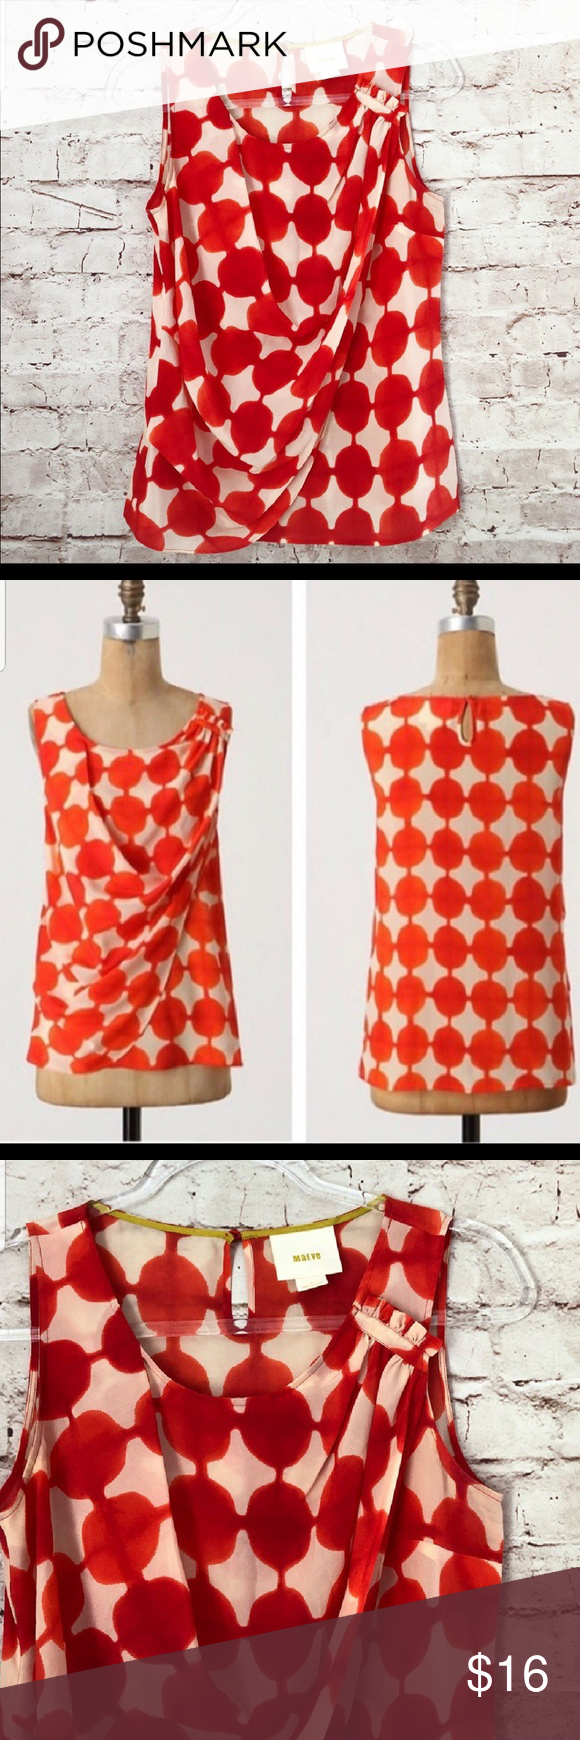 c0e0c5f1f2b9a Anthropologie maeve 100 silk blouse Polka dot blouse in perfect condition.  The polka dots are an orangish red Anthropologie Tops Blouses